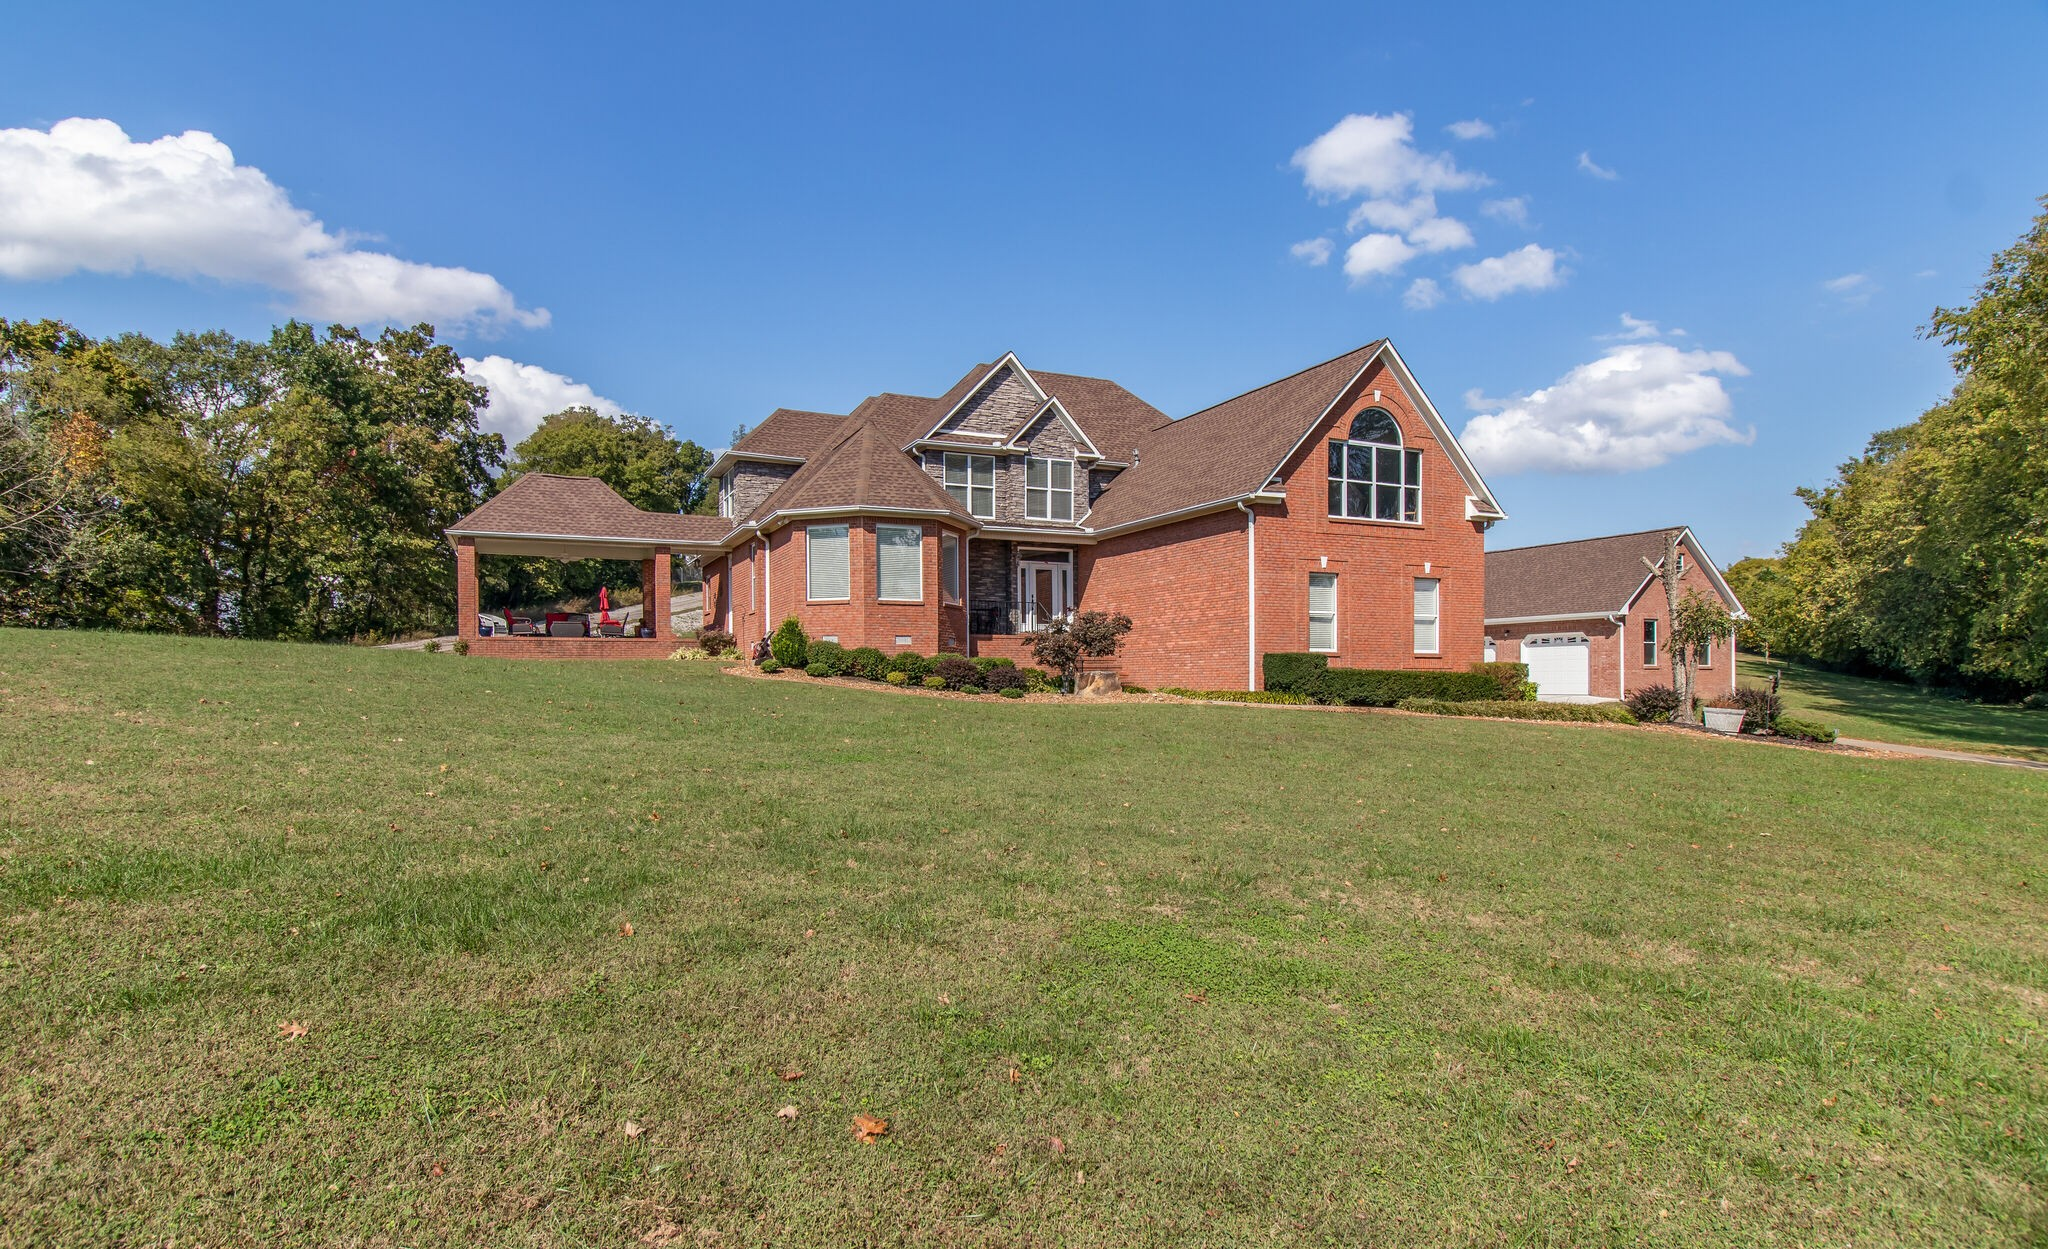 Stunning executive all brick home w/7 acres and in-ground pool perched on a hill with amazing views of TN hills. Percs for 3 bedrooms but has 4. Open floor plan with hardwood floors, granite, custom millwork, ss appliances, 3 covered porches,views from every window, huge bonus room, tons of storage, 3 car attached garage and additional 2 car detatched with unfinished space above,encapsulated crawl space.